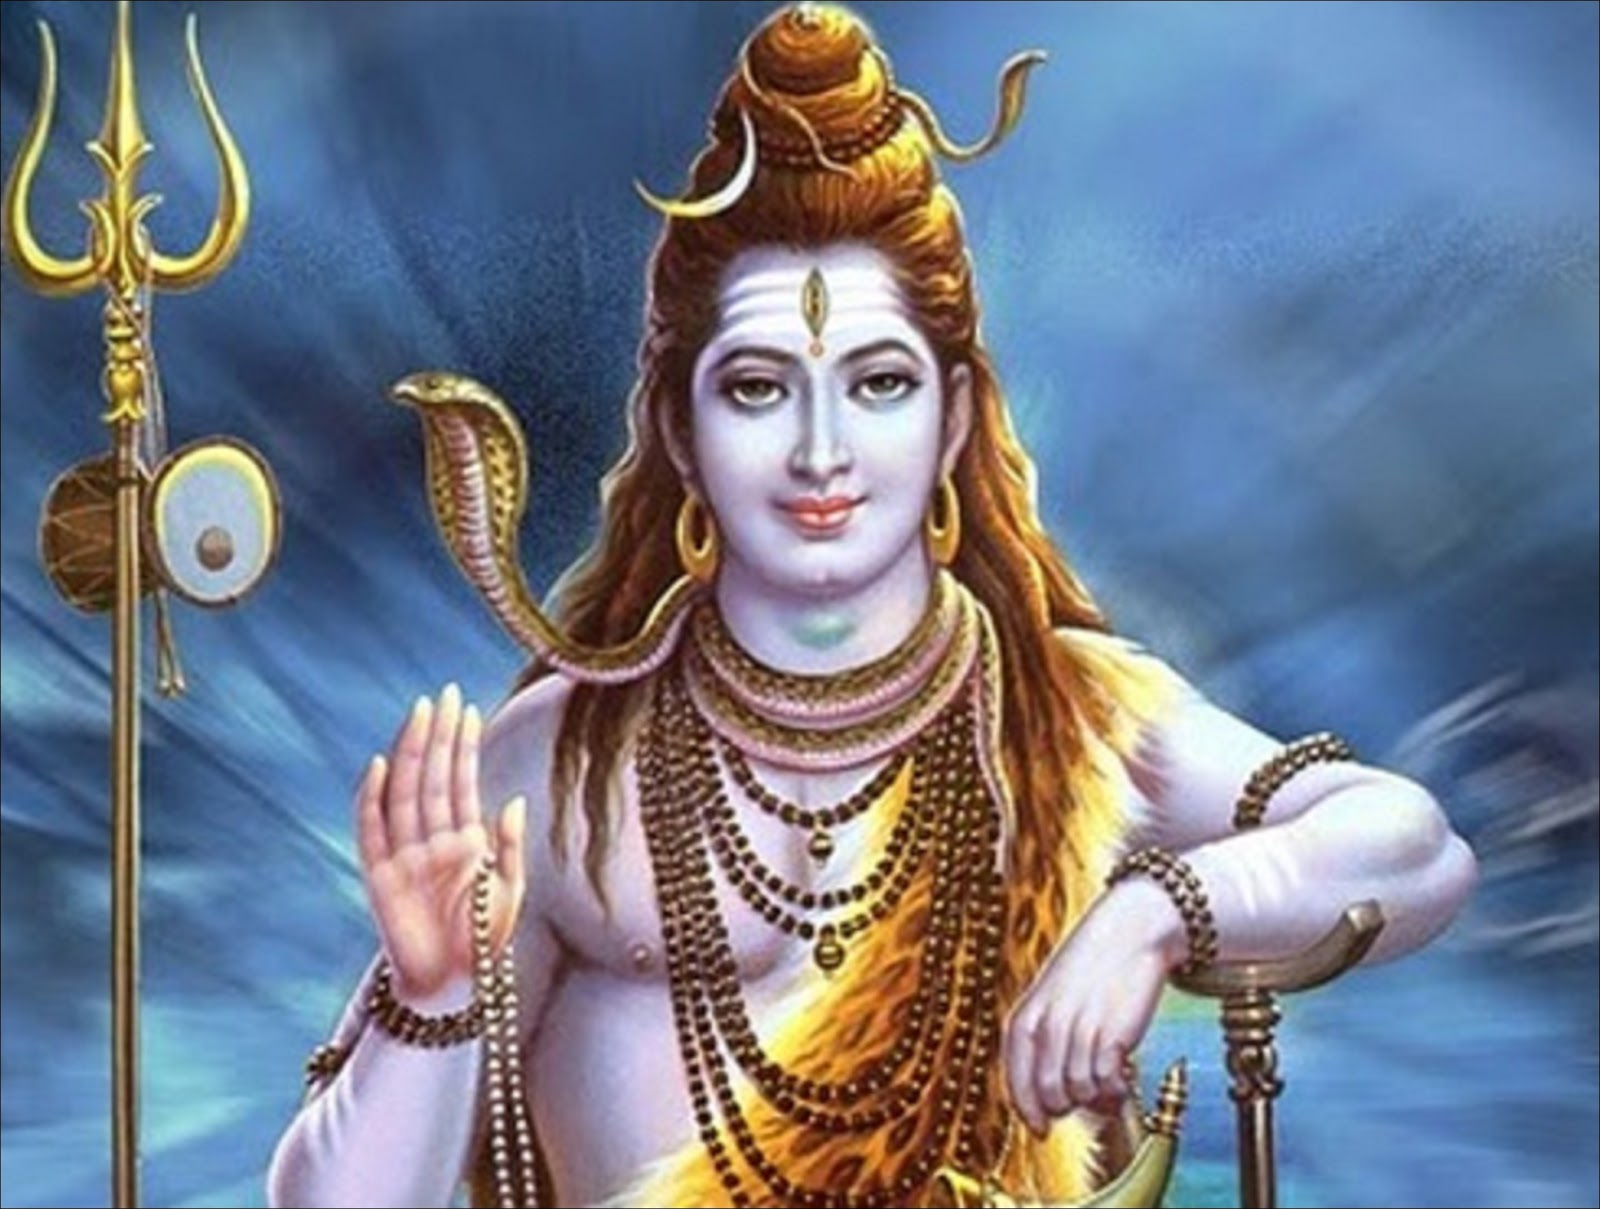 Wallpapers Of Lord Shiva In 3d